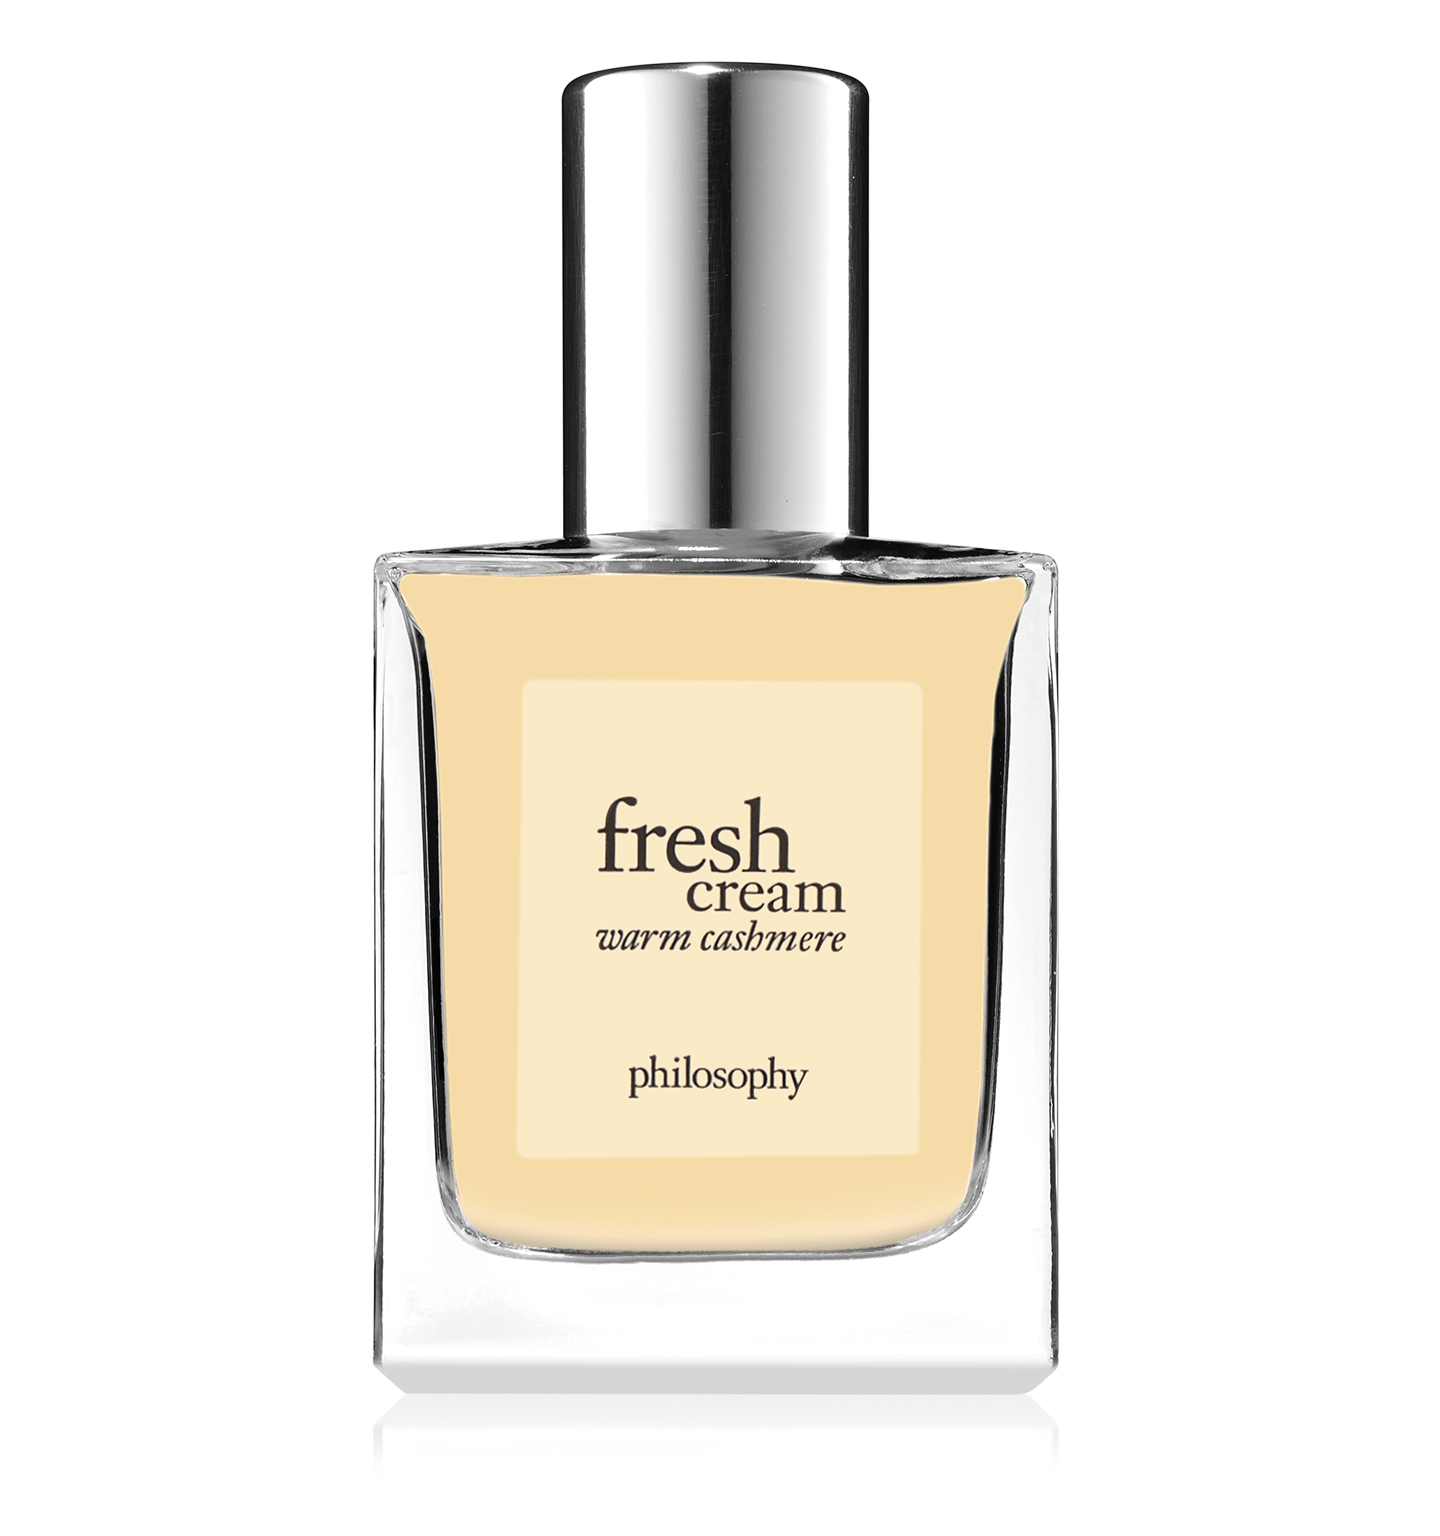 fresh cream cashmere eau de toilette